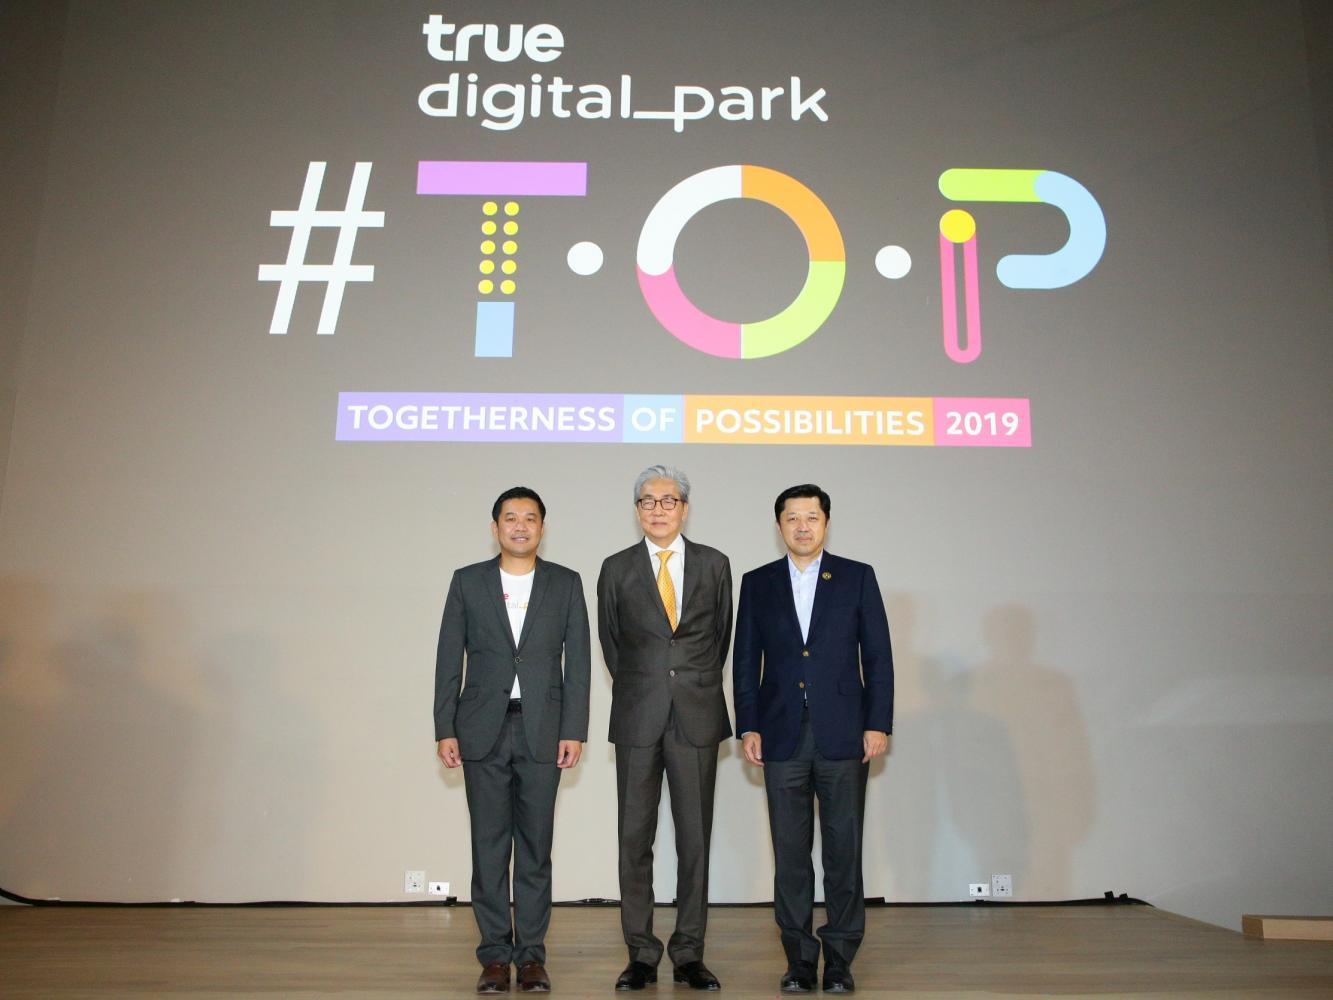 Deputy Prime Minister Somkid Jatusripitak (centre) presided over Wednesday's opening ceremony at the Togetherness of Possibilities 2019 tech conference. He was welcomed by Mr Suphachai (right) and Thanasorn Jaidee, president of True Digital Park.